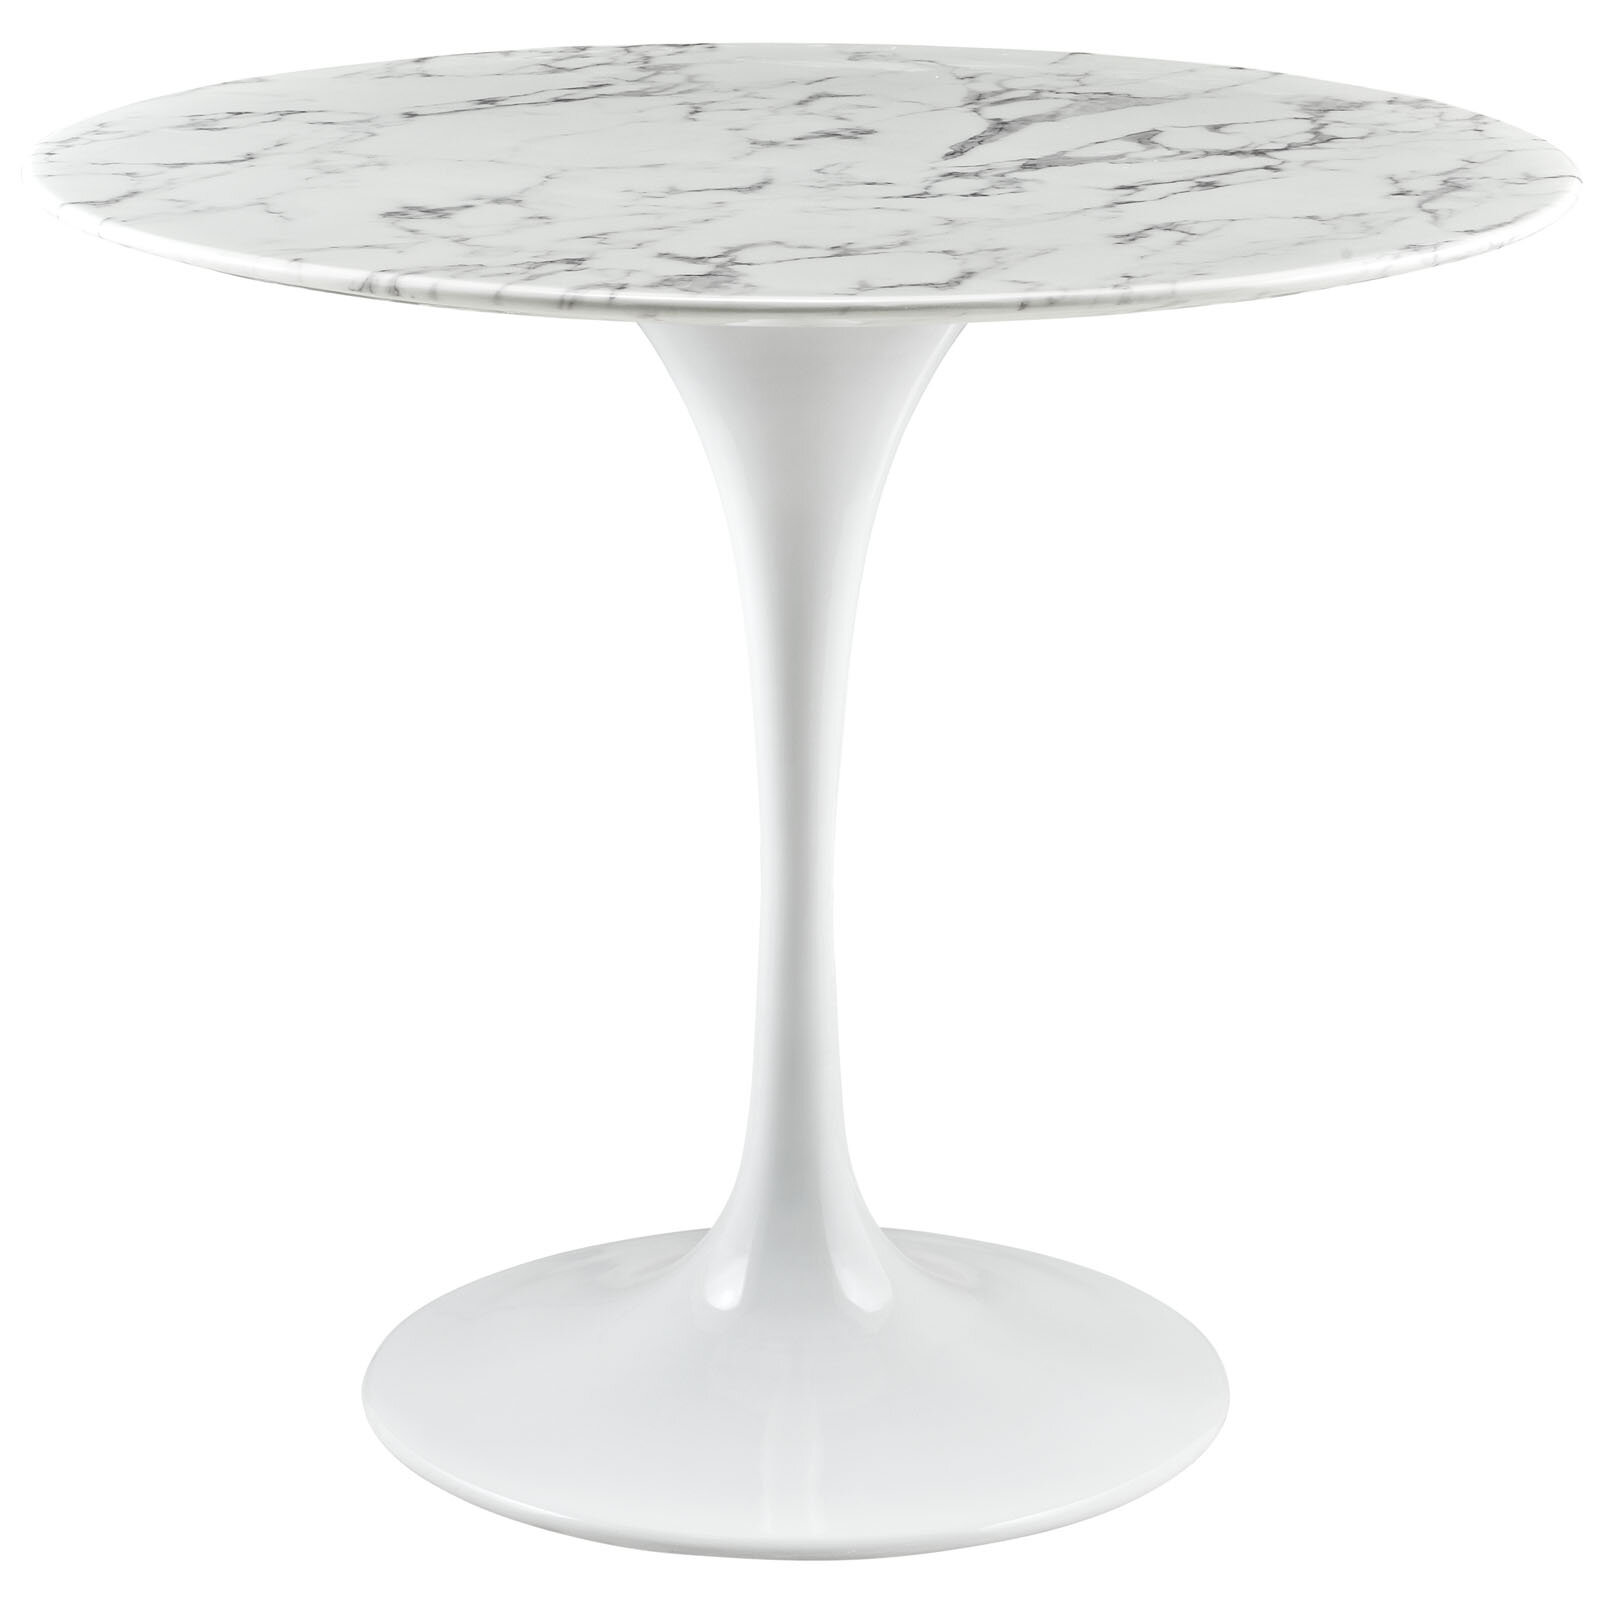 tr bath dining stone hayes top marble table helsinki with pedestal store furniture carrara